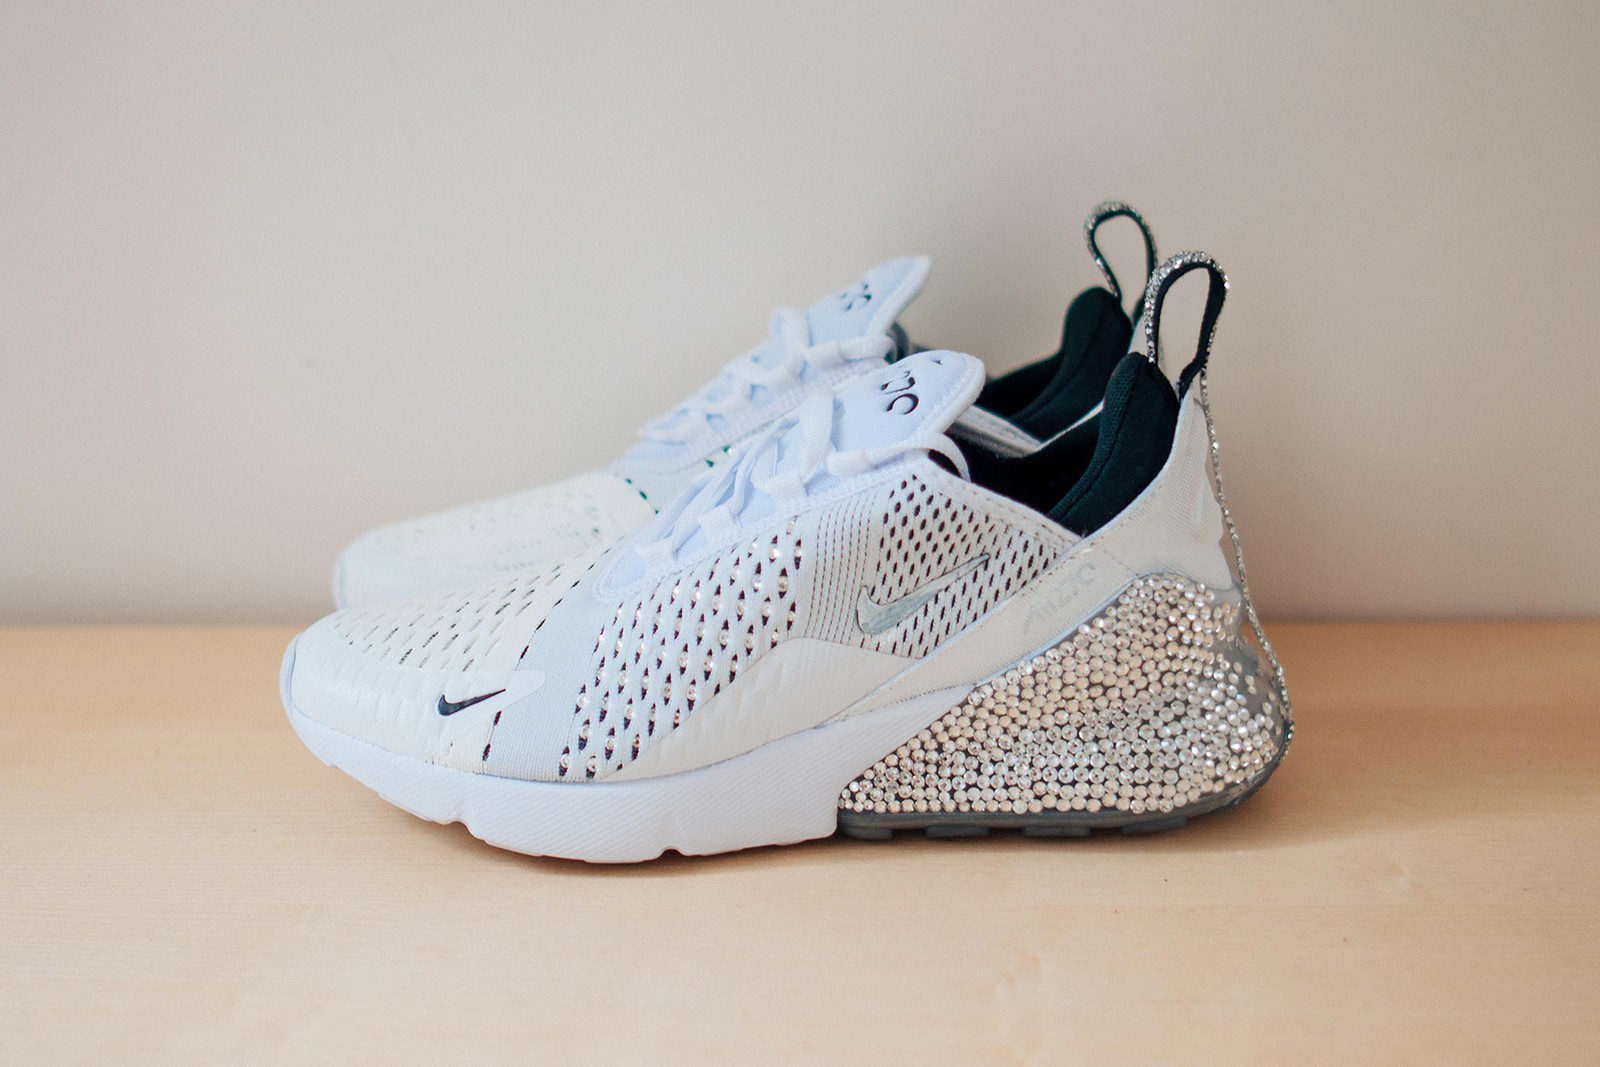 Nike Air Max Day 2018 Custom Sneakers Women DIY Customize Swarovski  Crystals Frankie Collective Sara Gourlay 70d67c139